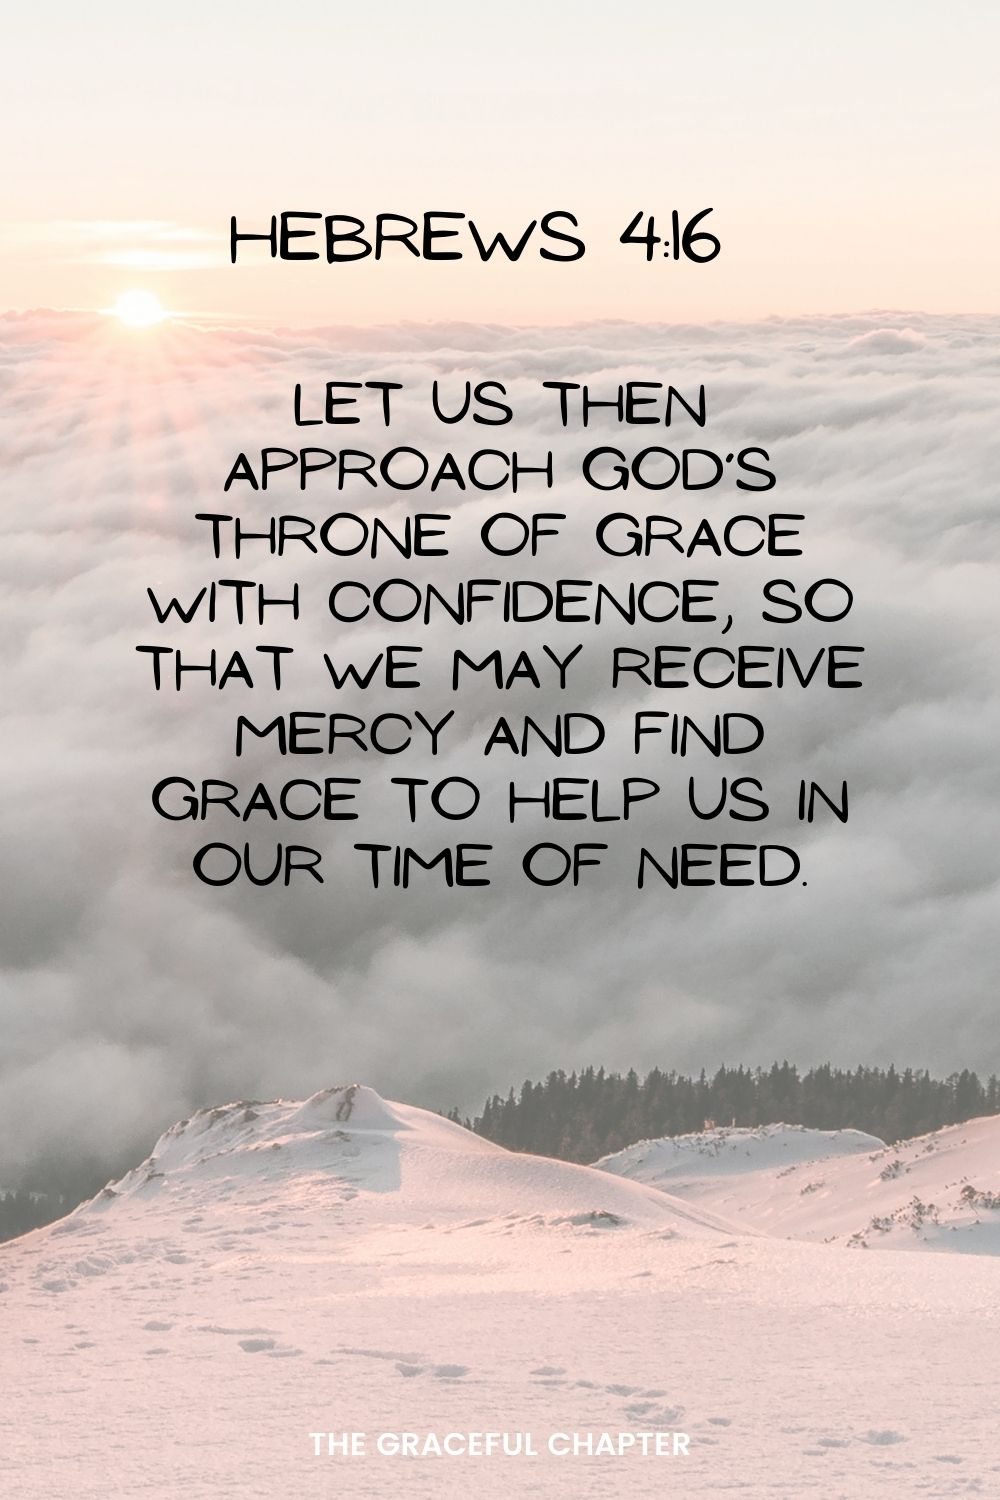 Let us then approach God's throne of grace with confidence, so that we may receive mercy and find grace to help us in our time of need. Hebrews 4:16